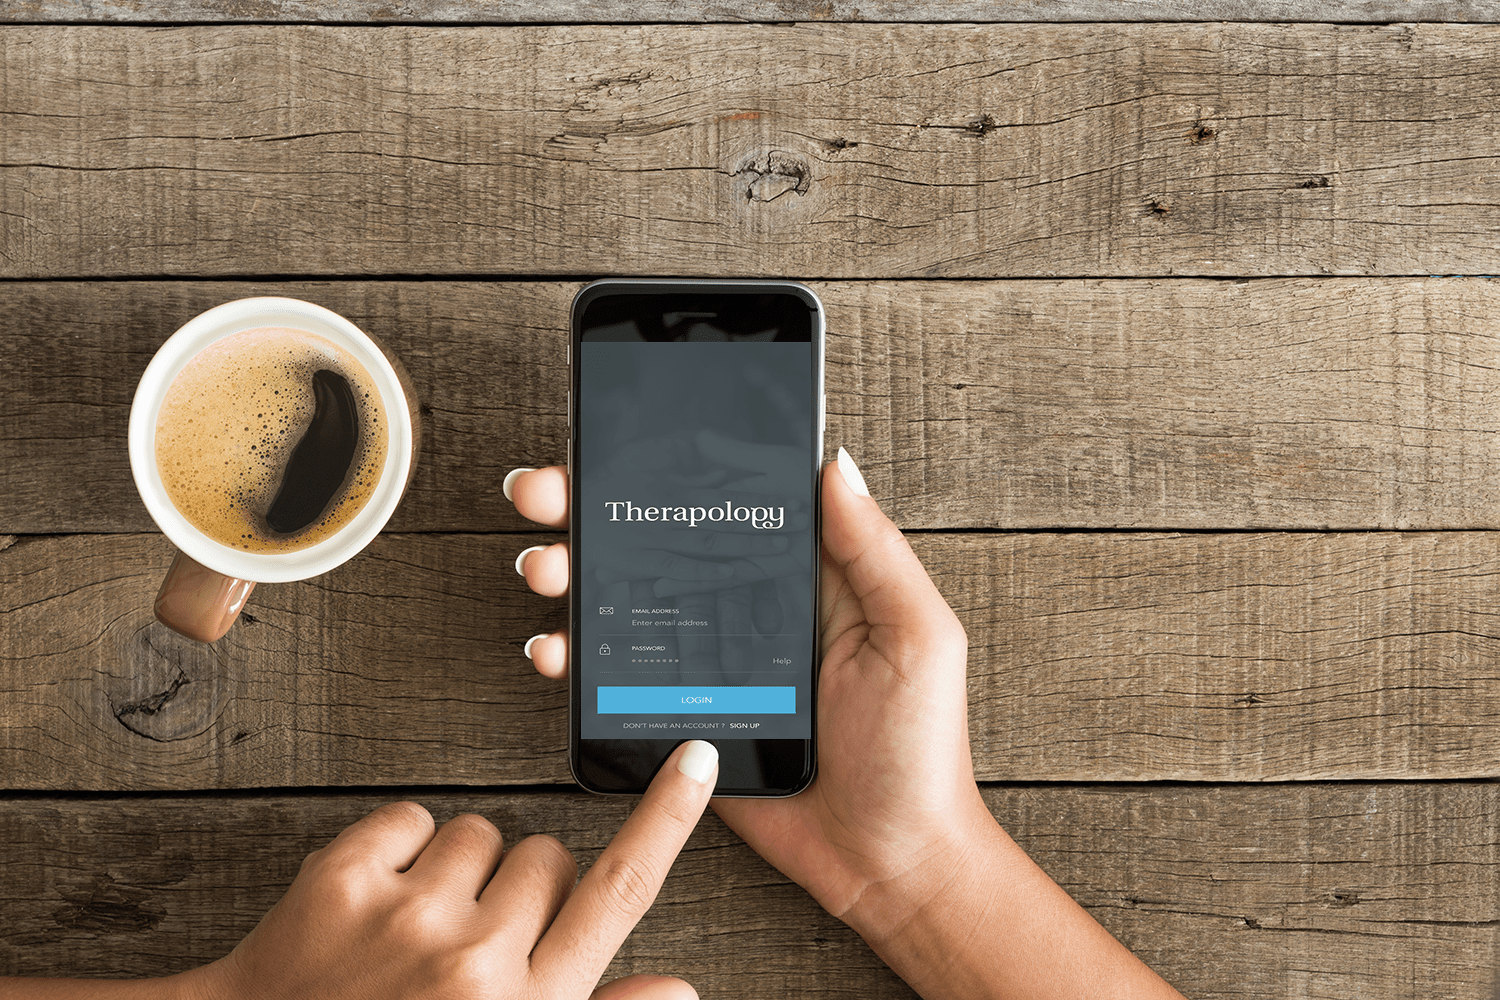 Therapology-Therapy-at-your-finger-tips